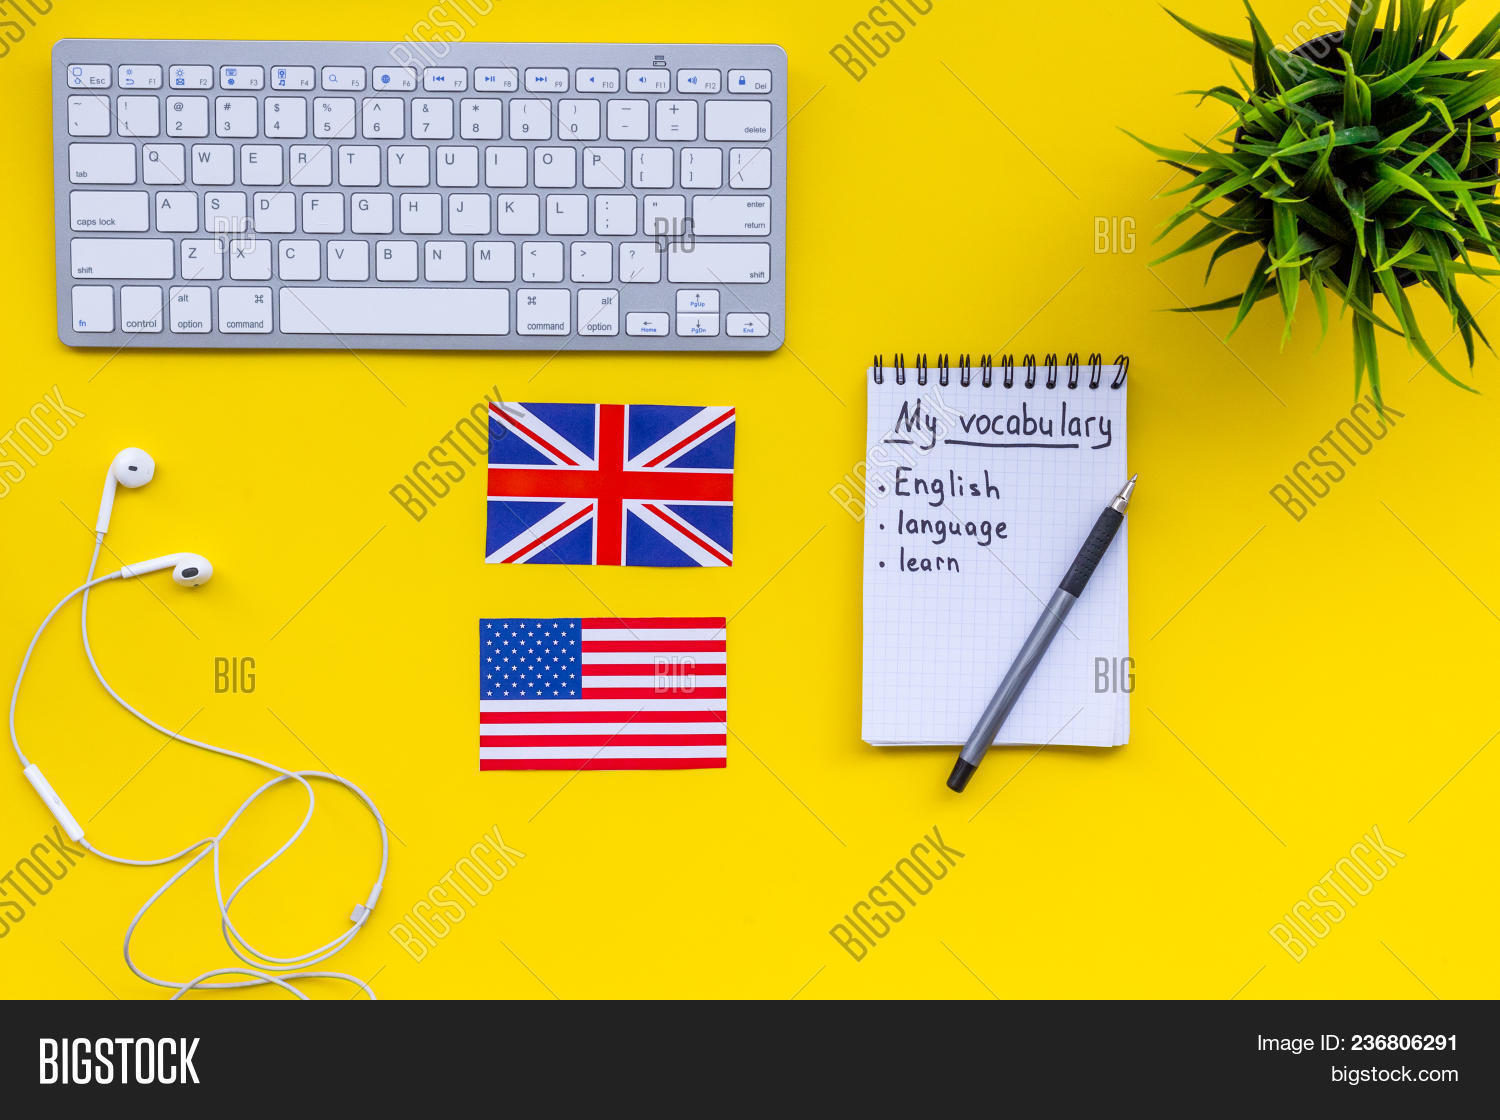 hight resolution of learn new english vocabulary learn landuage concept computer keyboard british and american flags